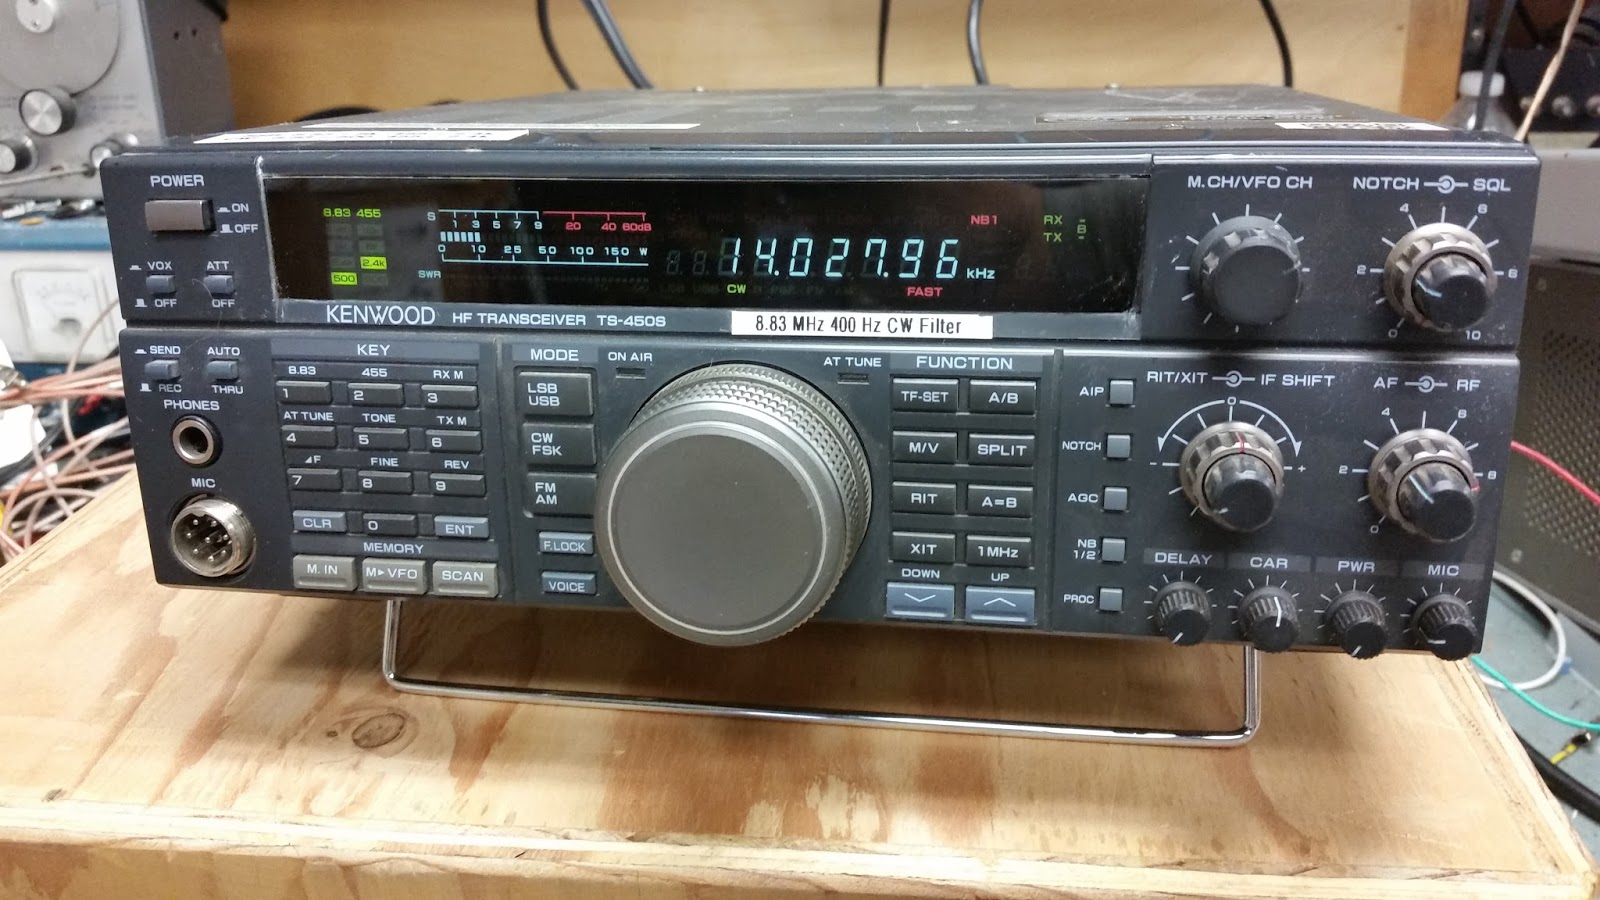 KA7OEI's blog: Fixing the squealing auto-tuner motors in the Kenwood